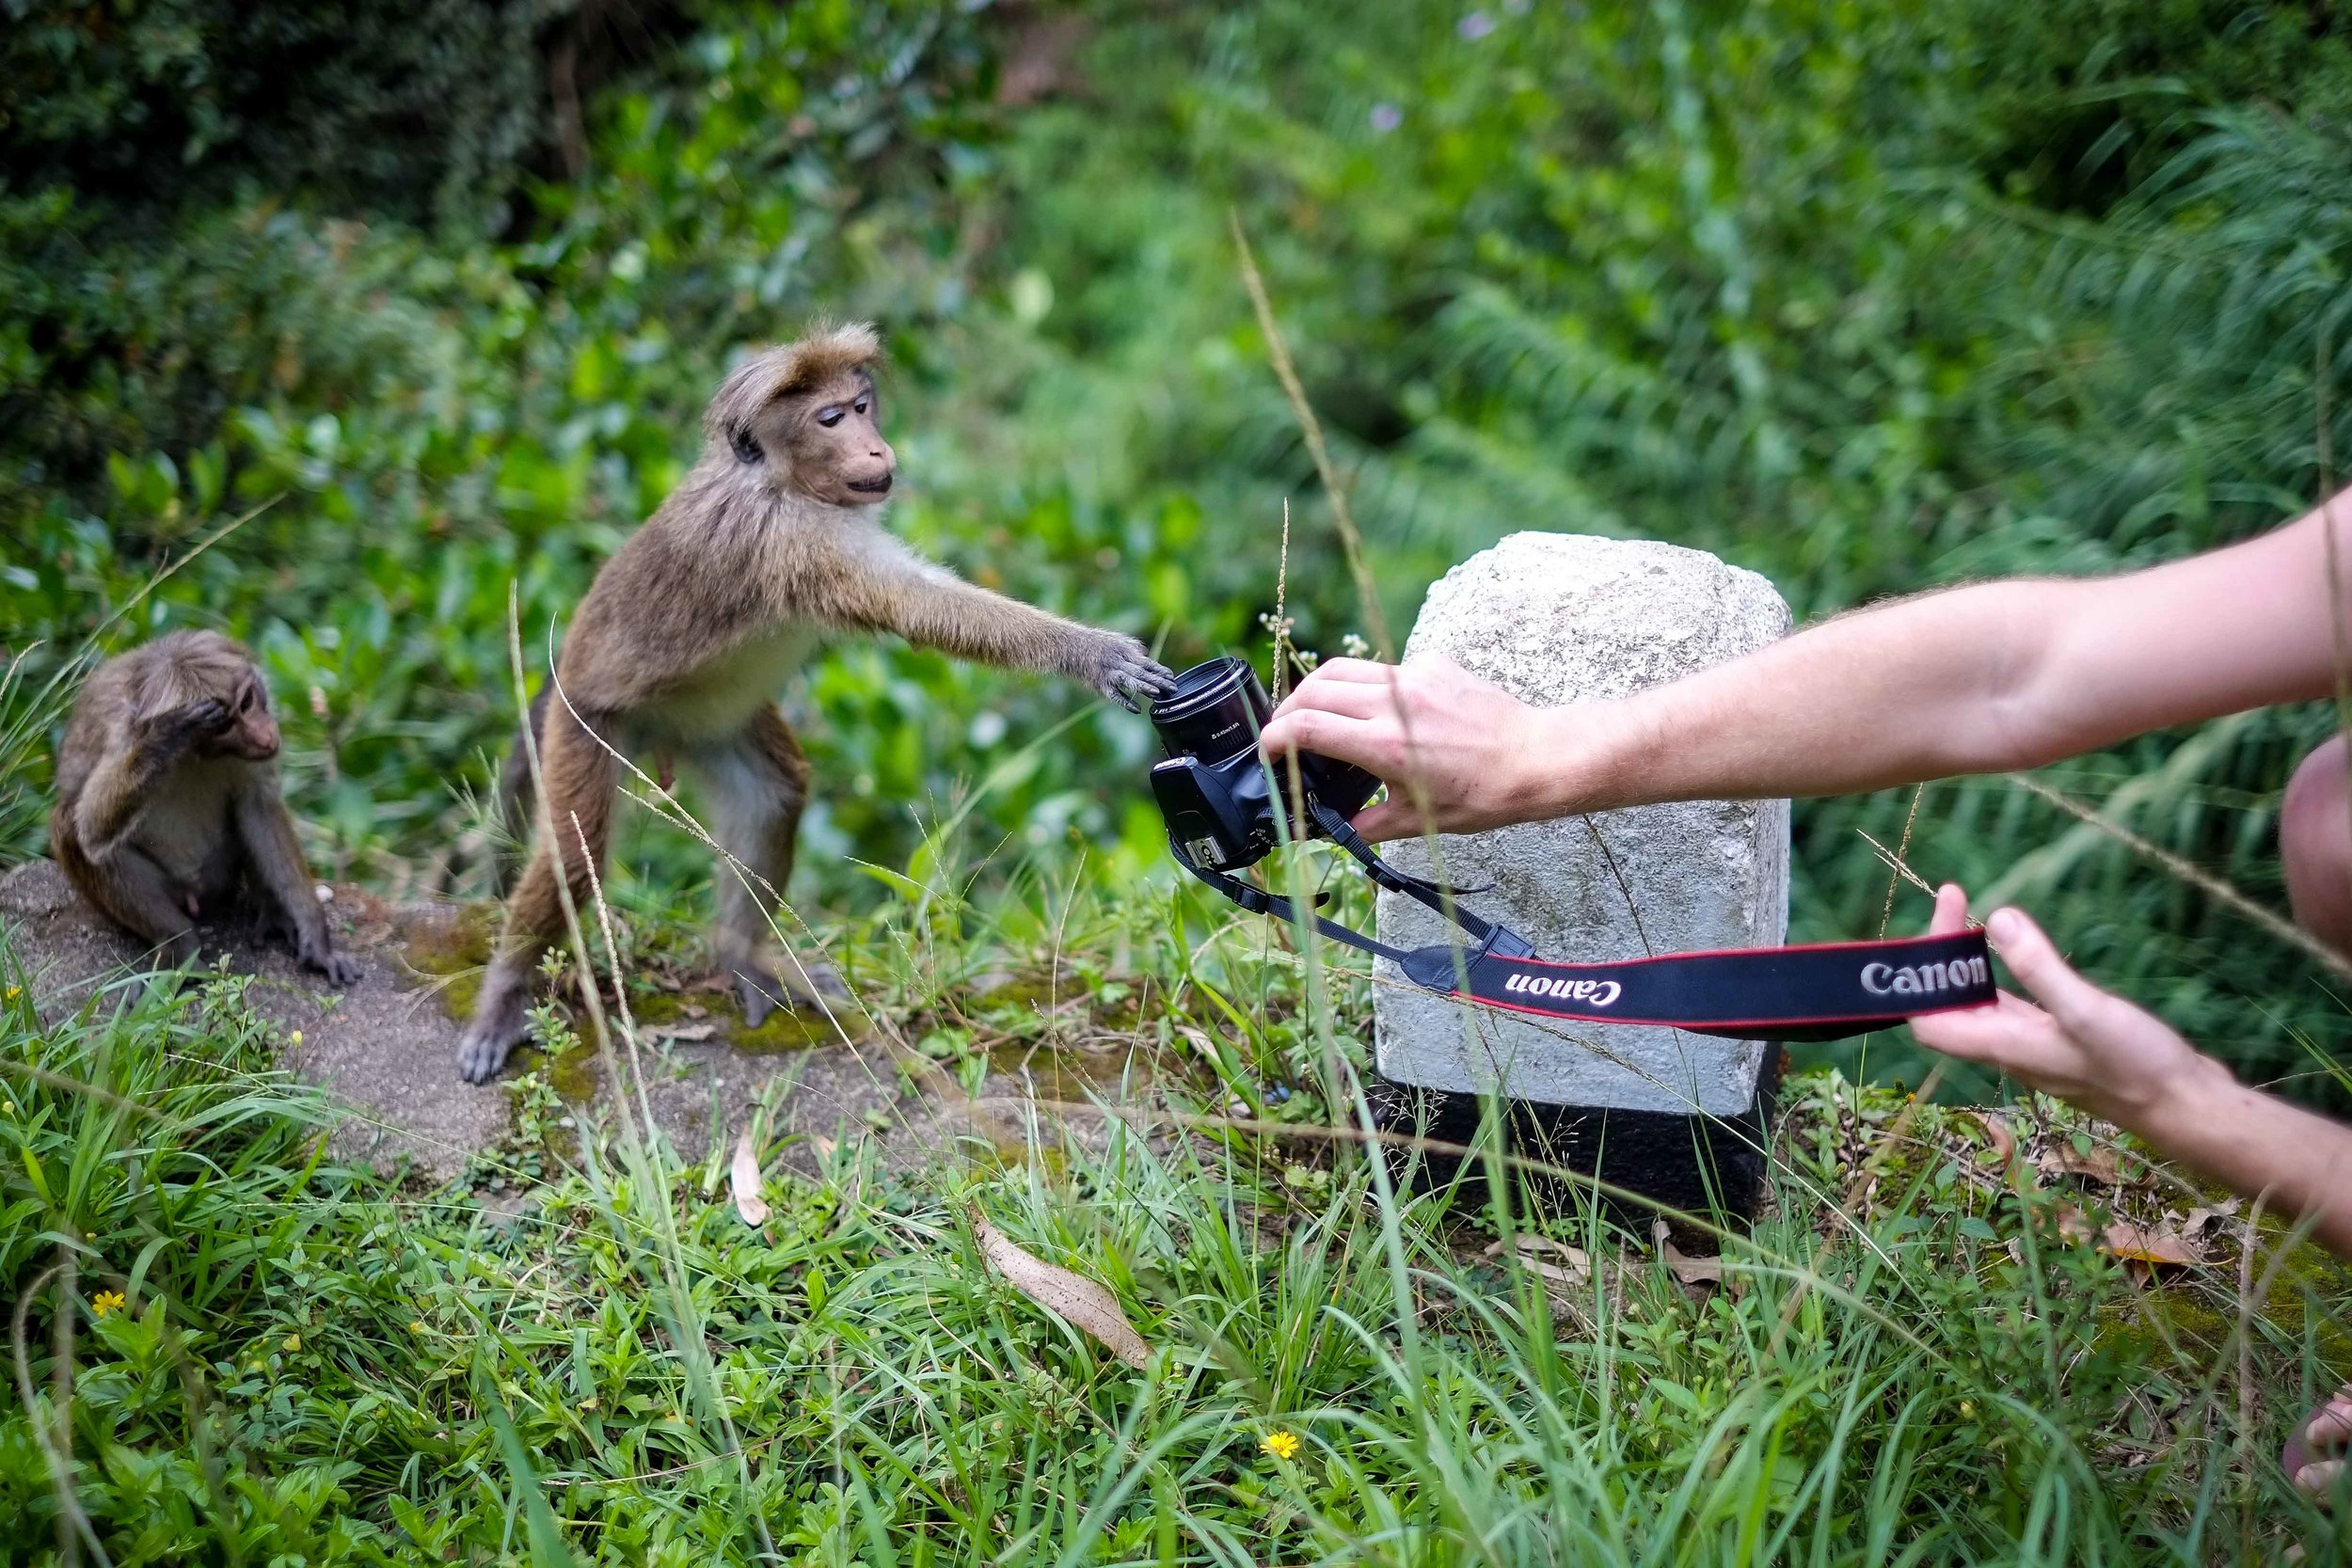 This little guy might just be the next big wildlife photographer.